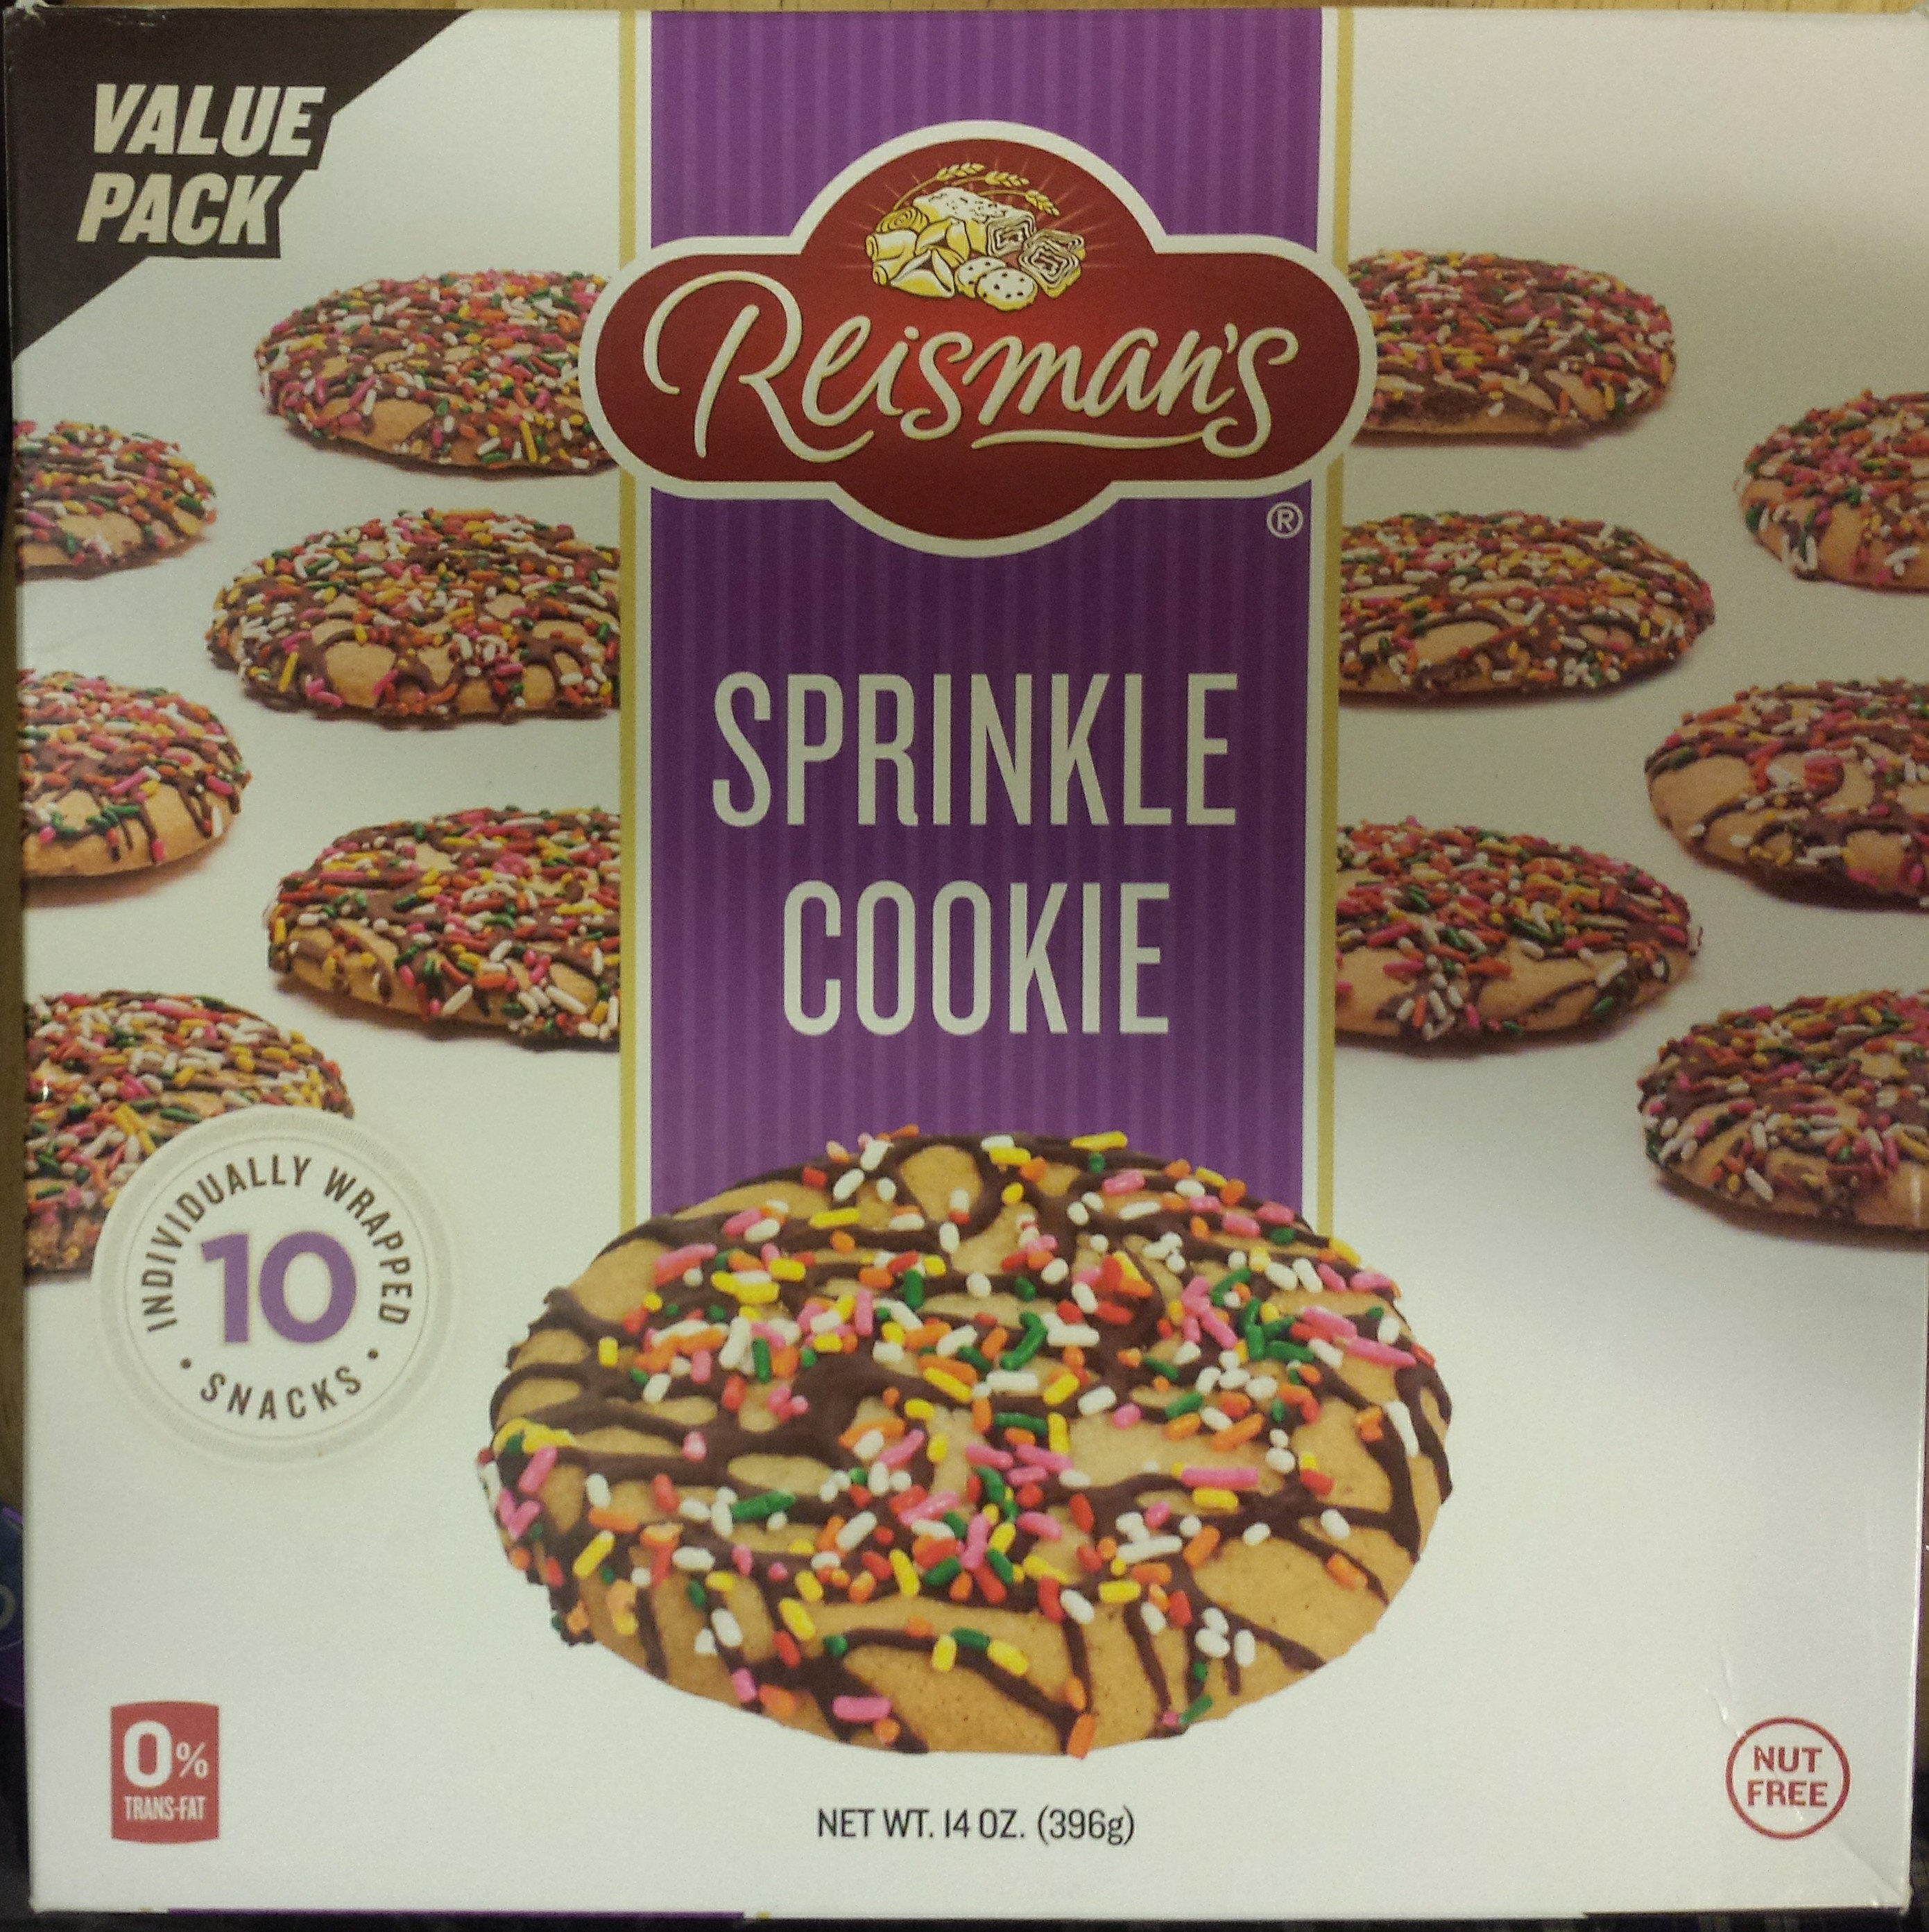 Sprinkle Cookie (10 pack) - Product - en